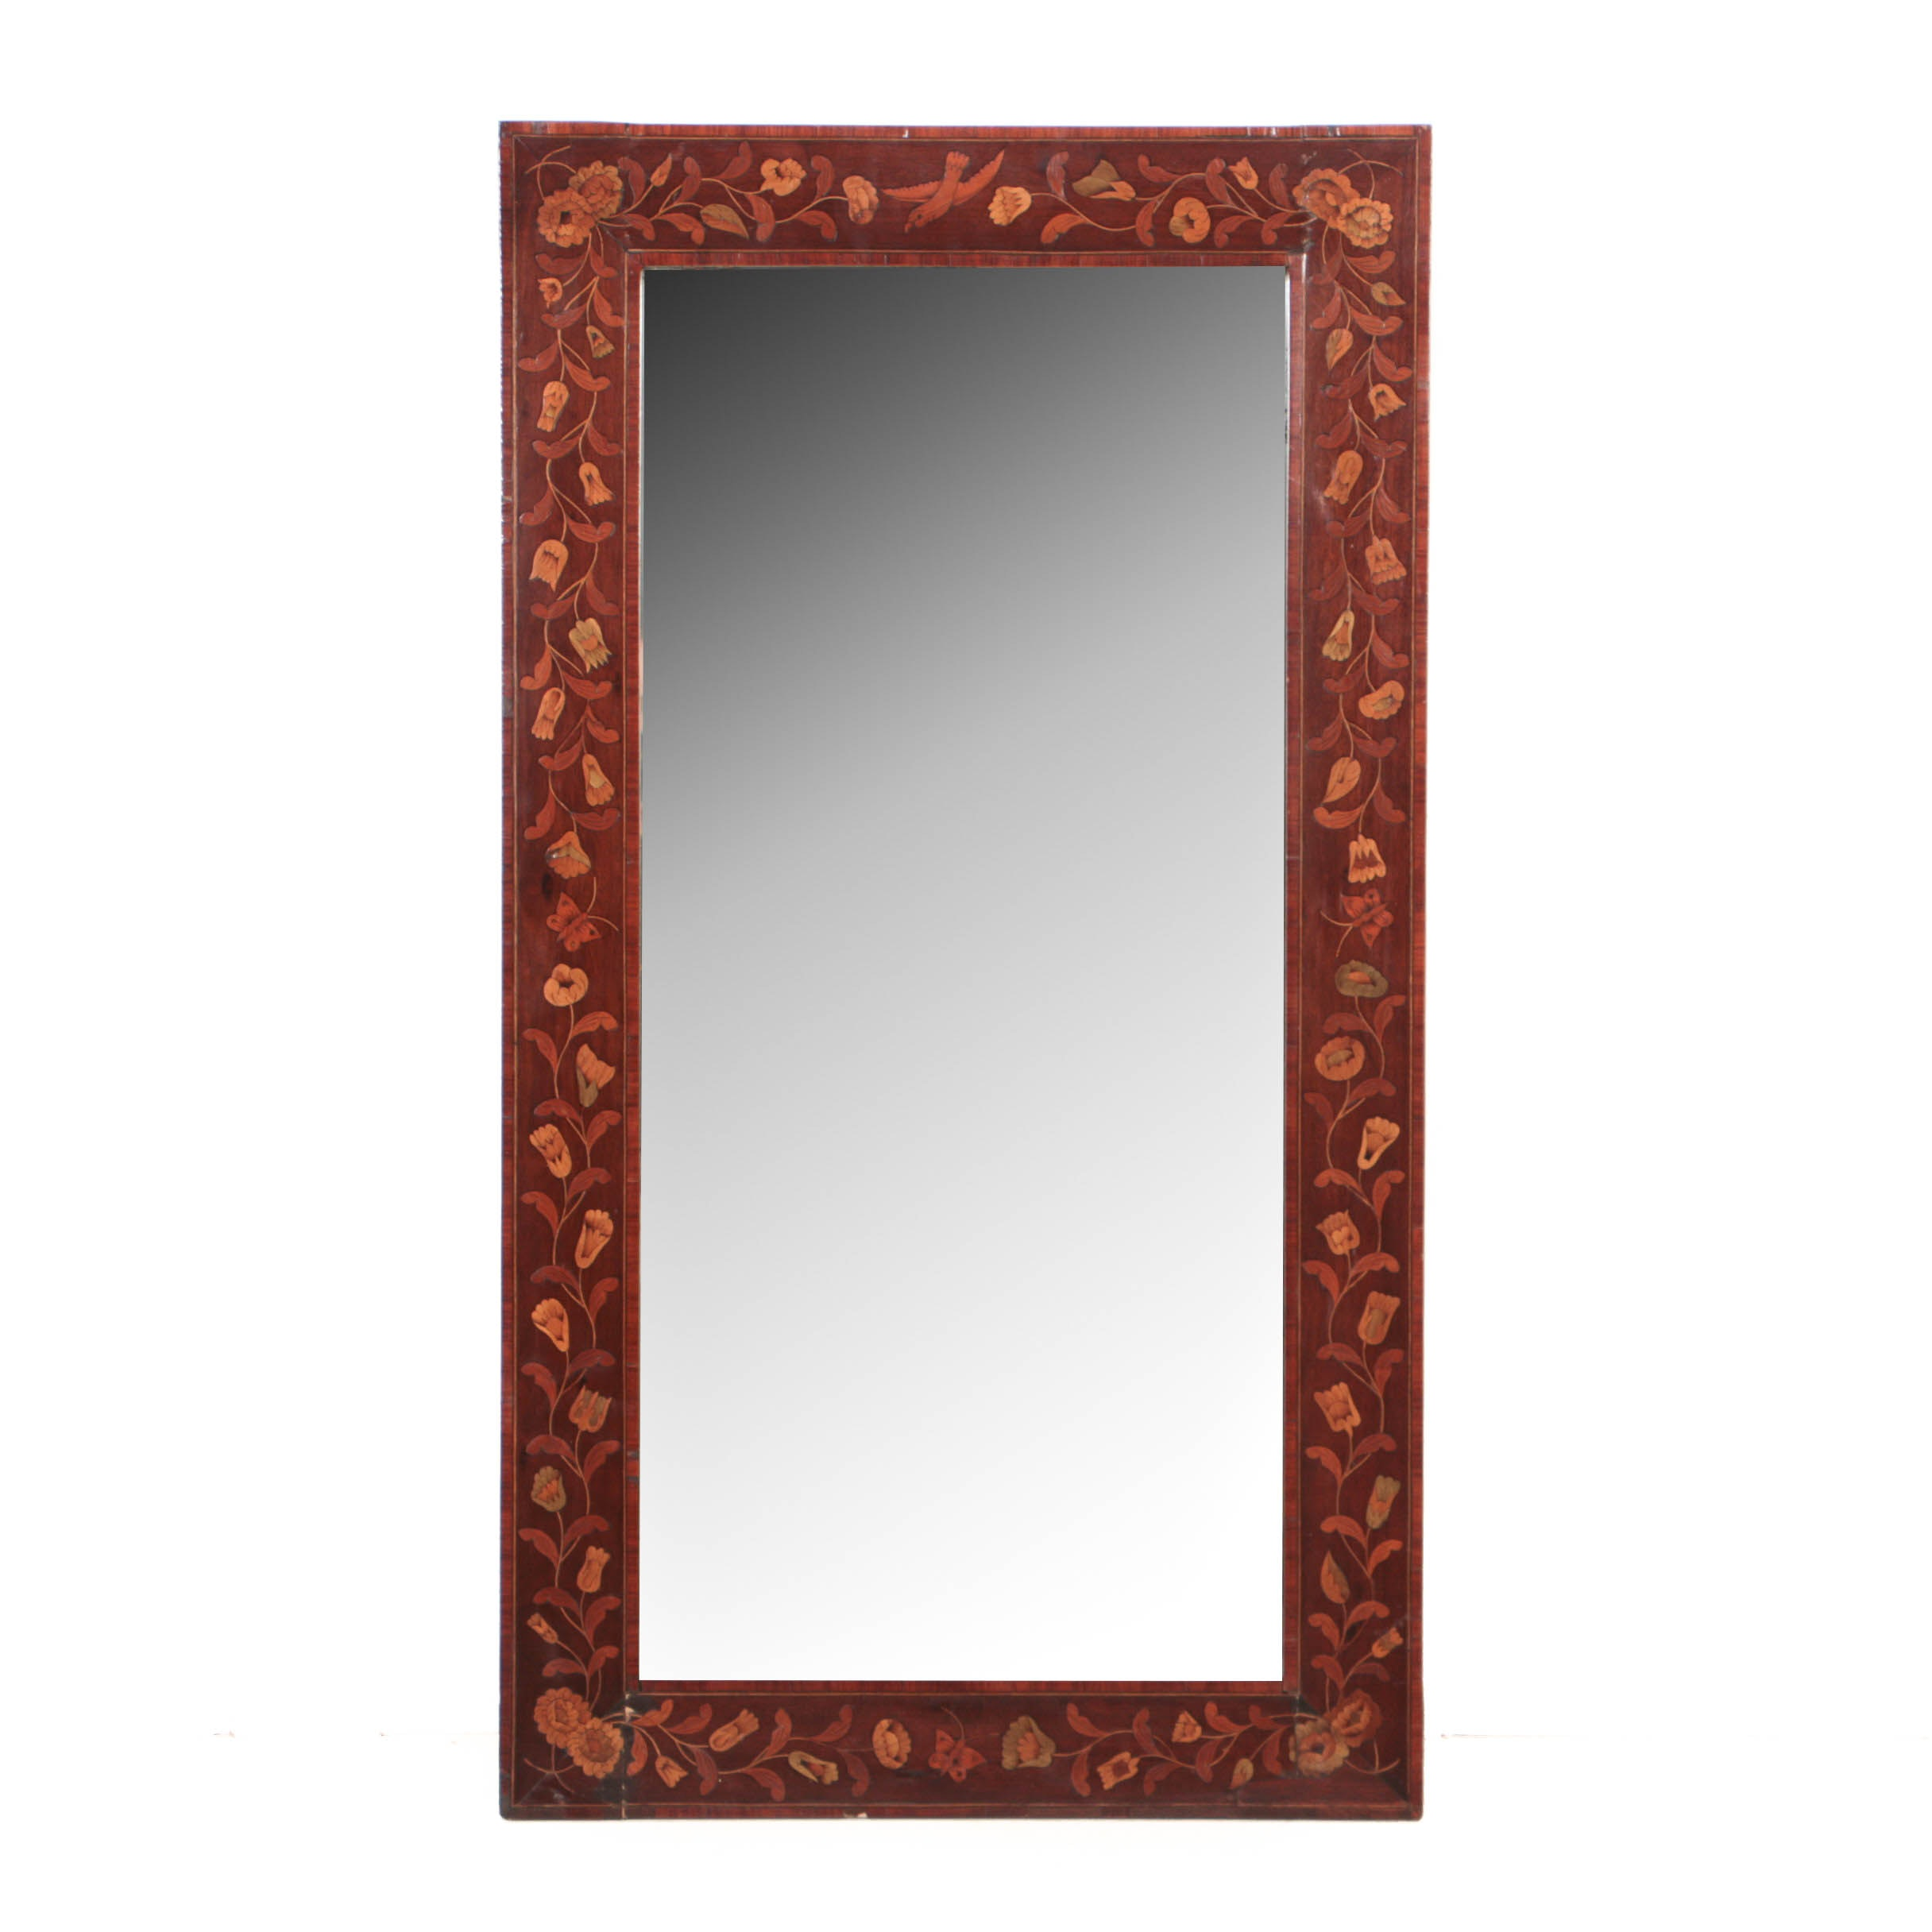 Antique Dutch Mahogany and Marquetry Mirror